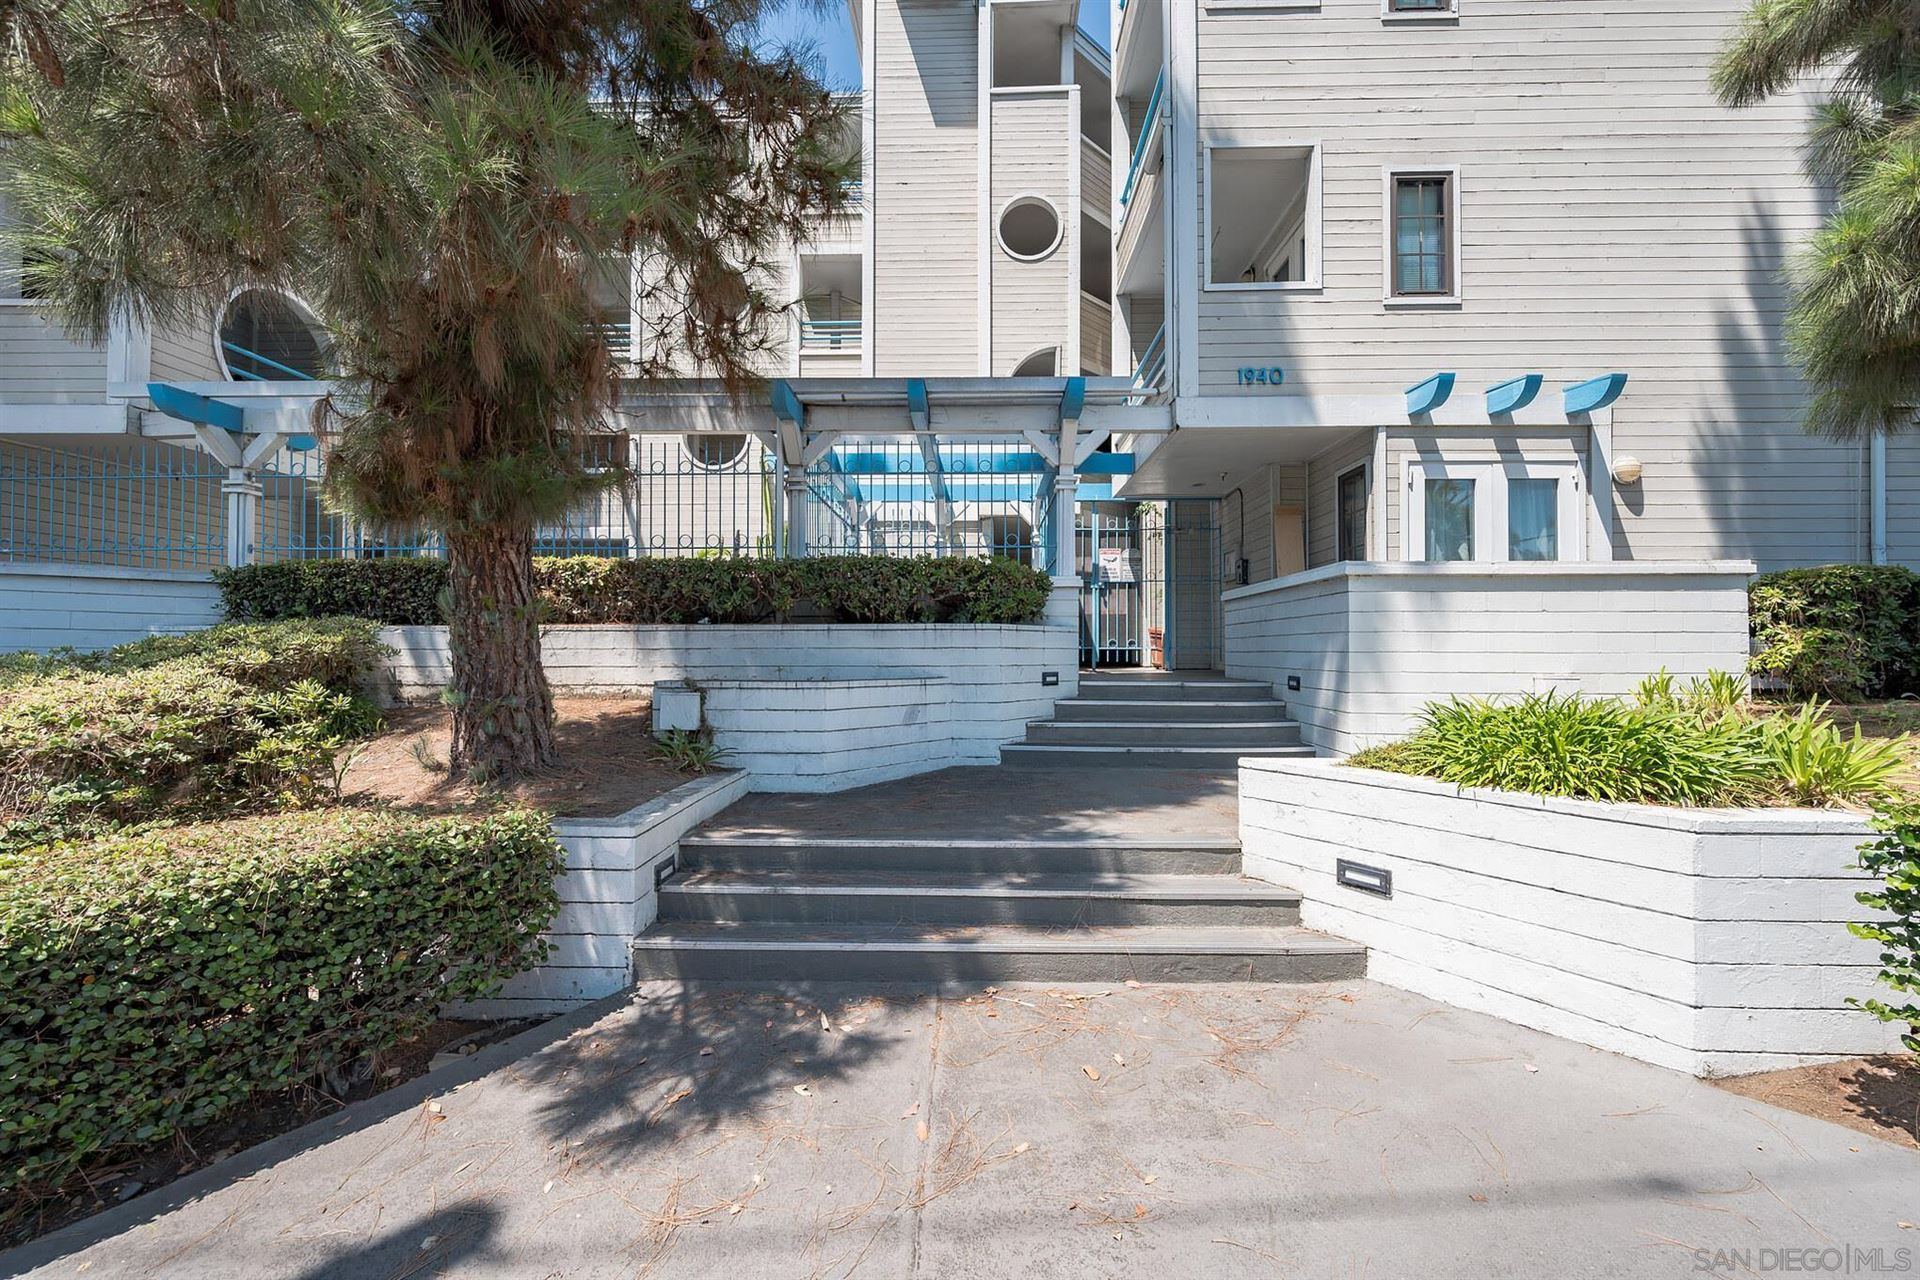 Photo for 1940 3rd Ave #207, San Diego, CA 92101 (MLS # 210025632)